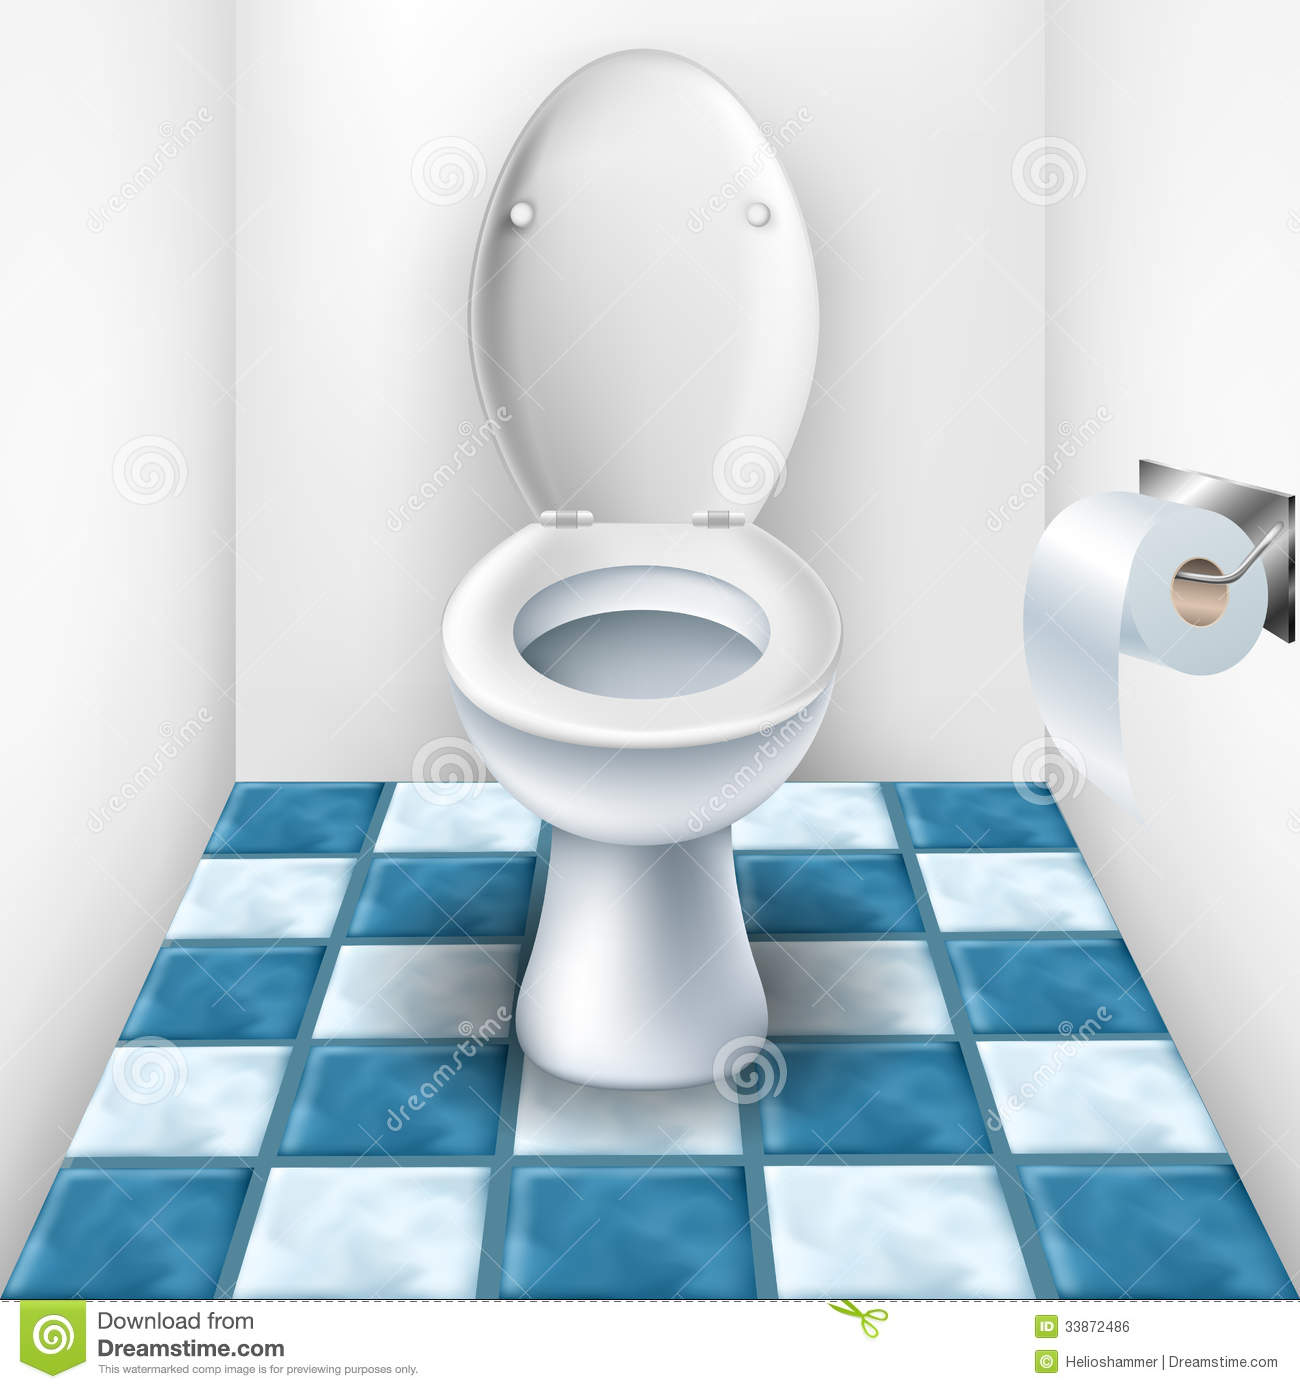 Bathroom With Toilet And Tile Pattern Stock Vector - Illustration of ...